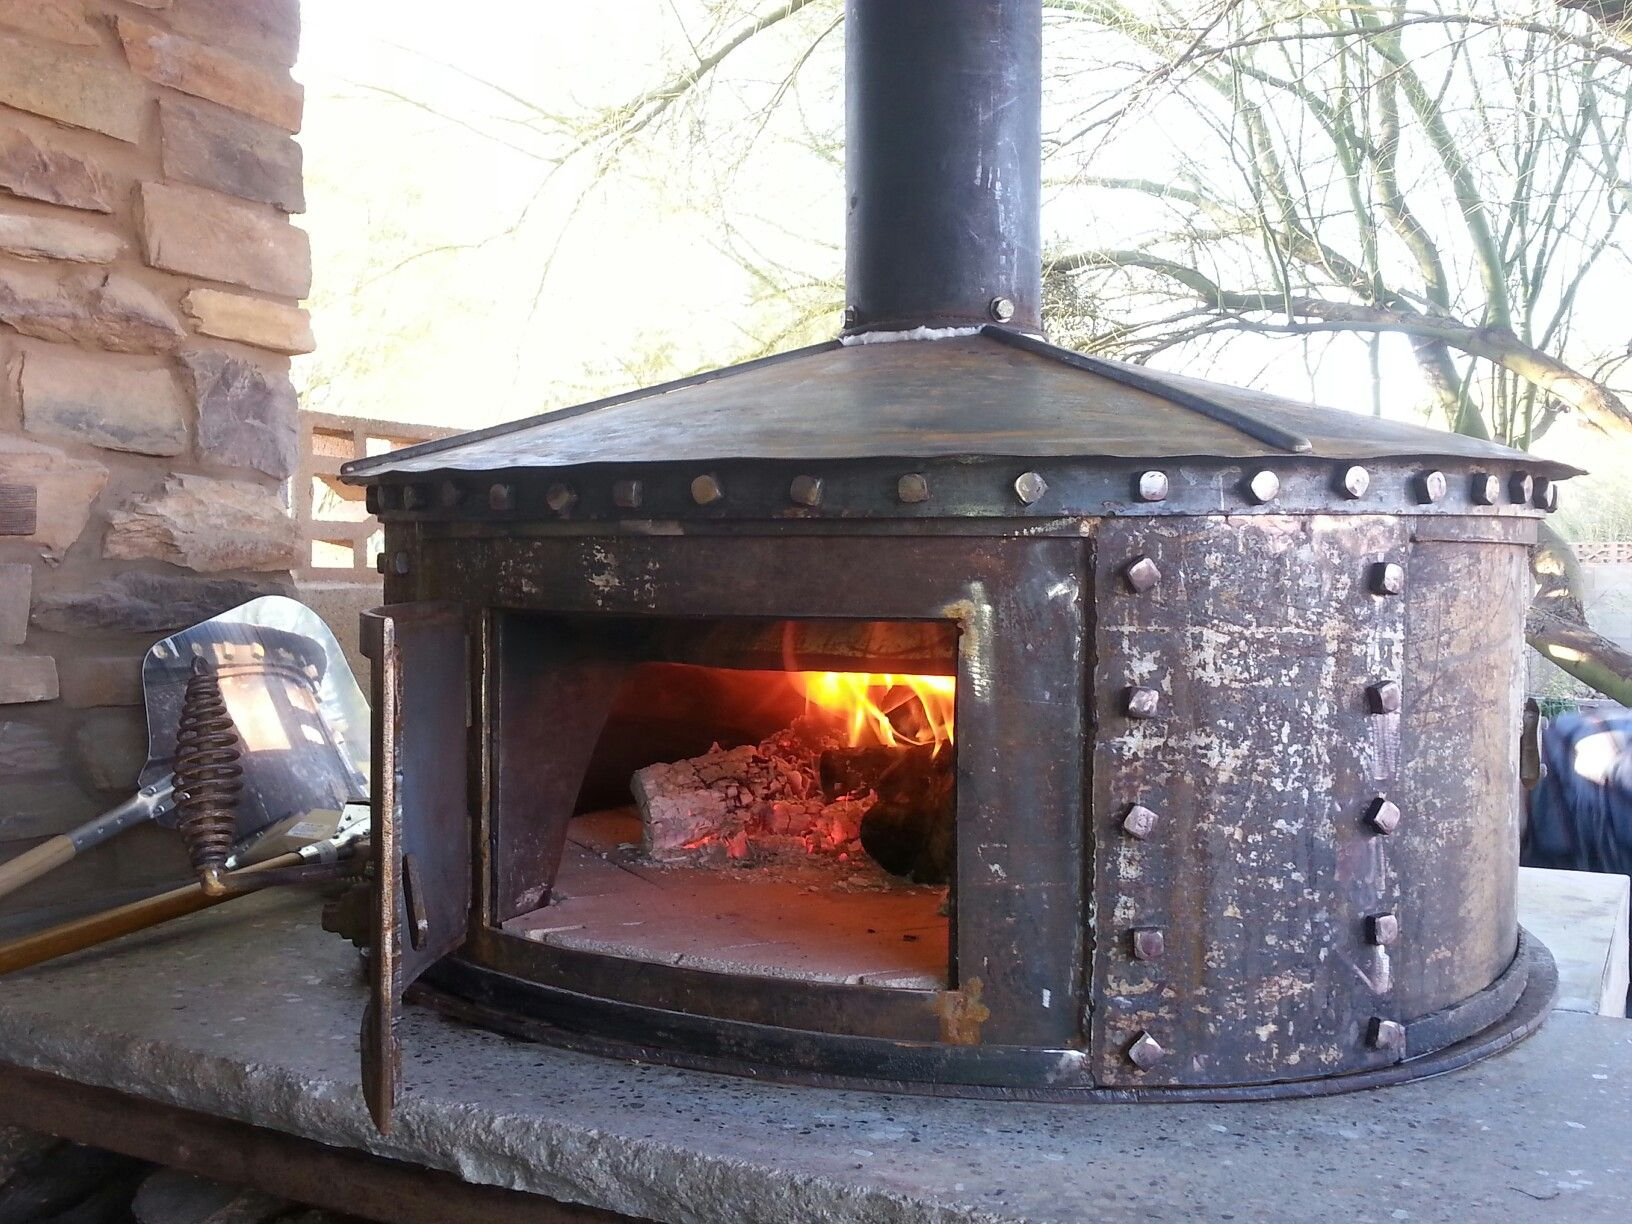 Steel Pizza Oven Made From An Old Propane Tank Outdoor Fireplace Pizza Oven Pizza Oven Outdoor Diy Pizza Oven